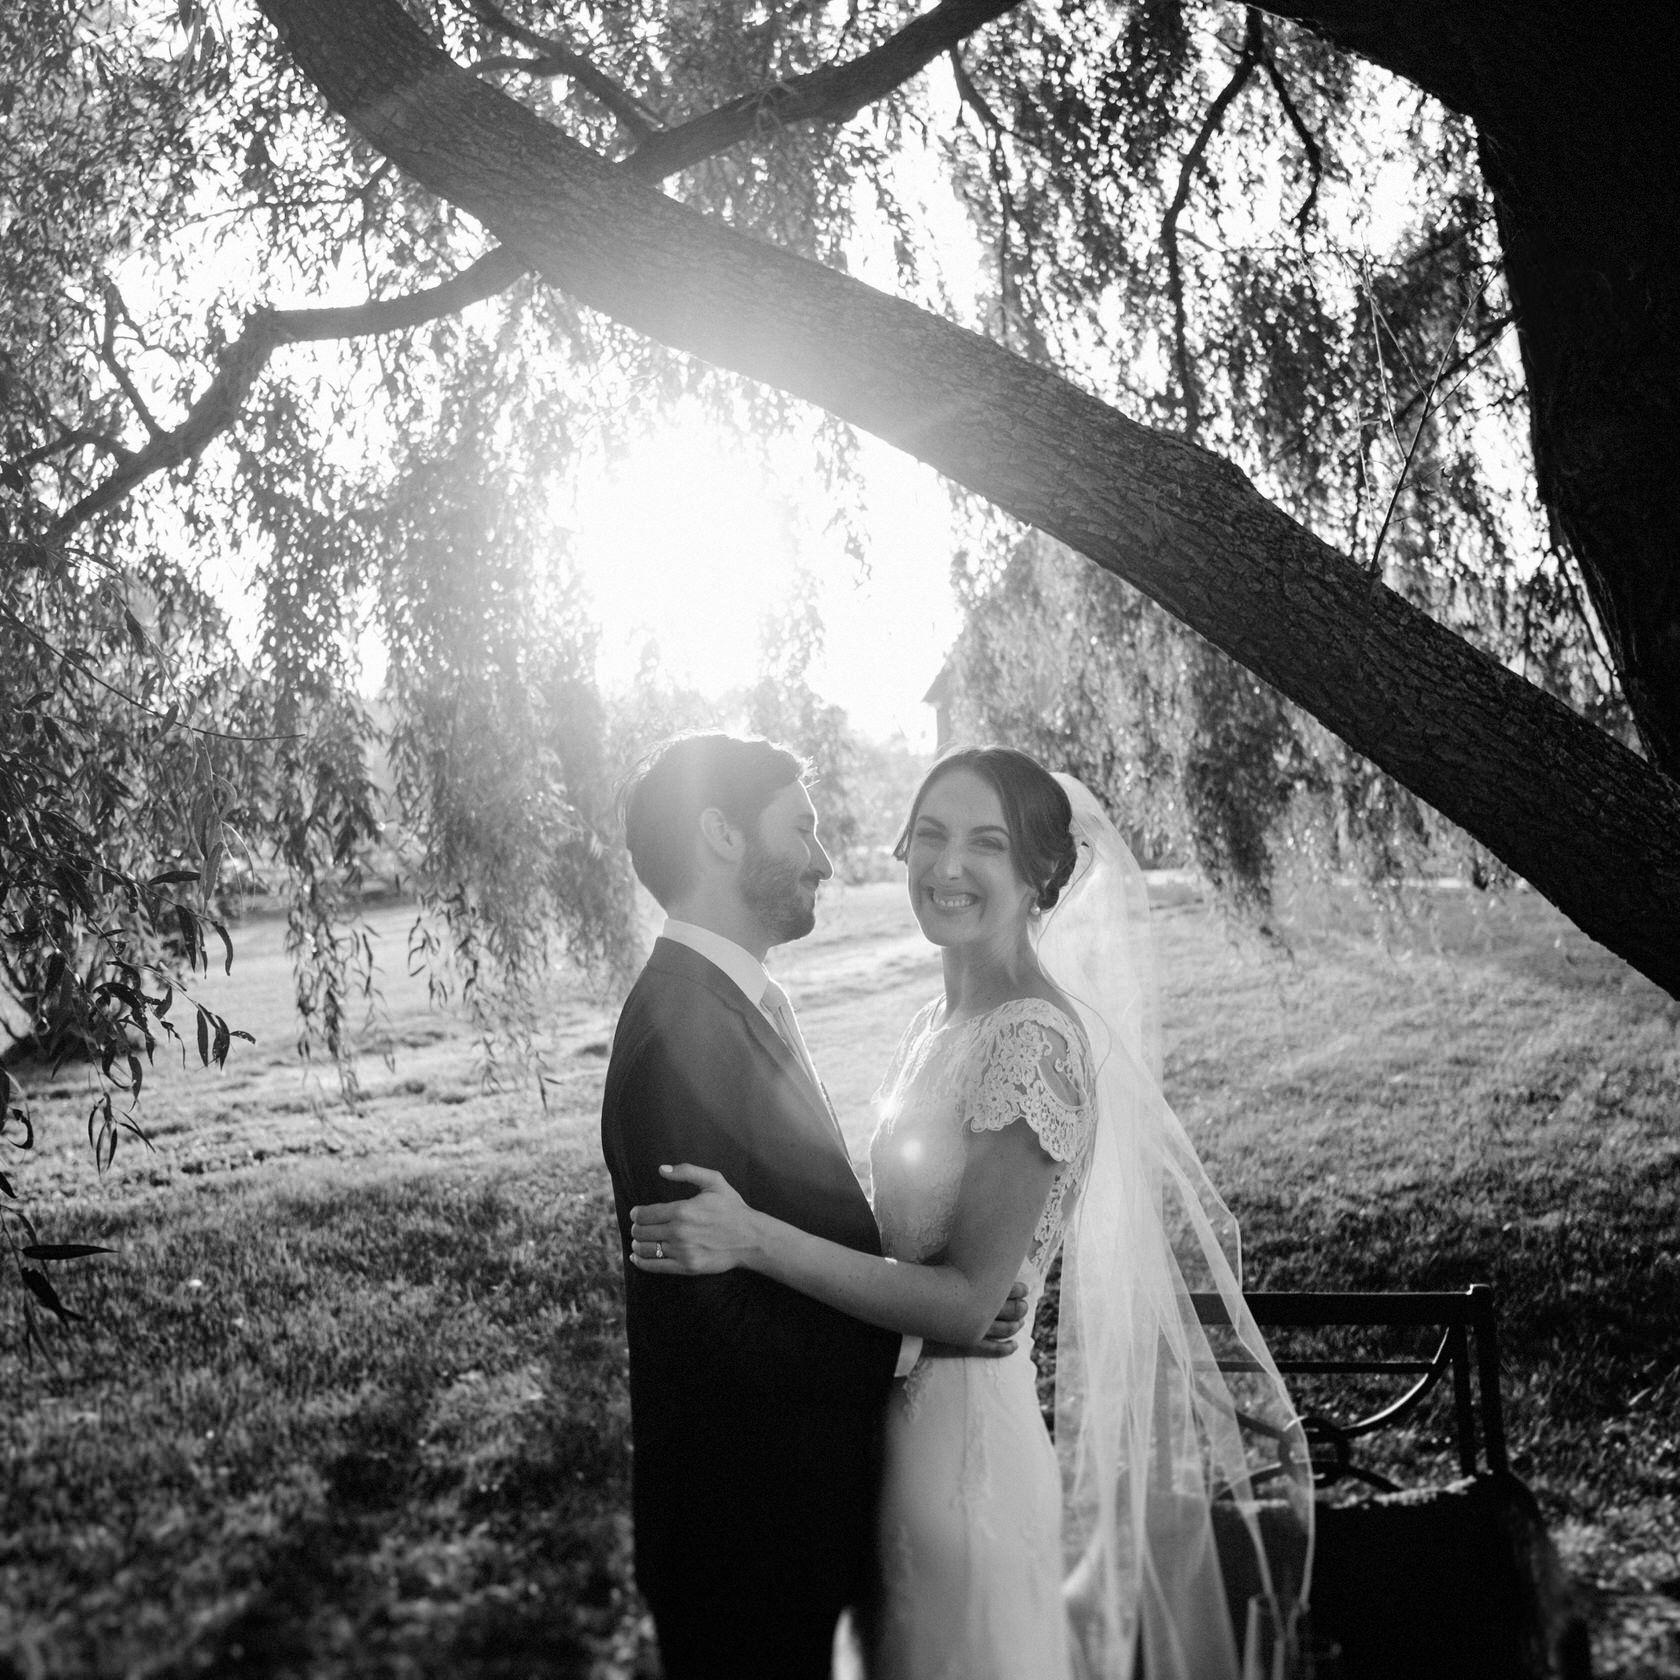 bride and groom wedding portraits at Evermore Weddings and Events.jpg